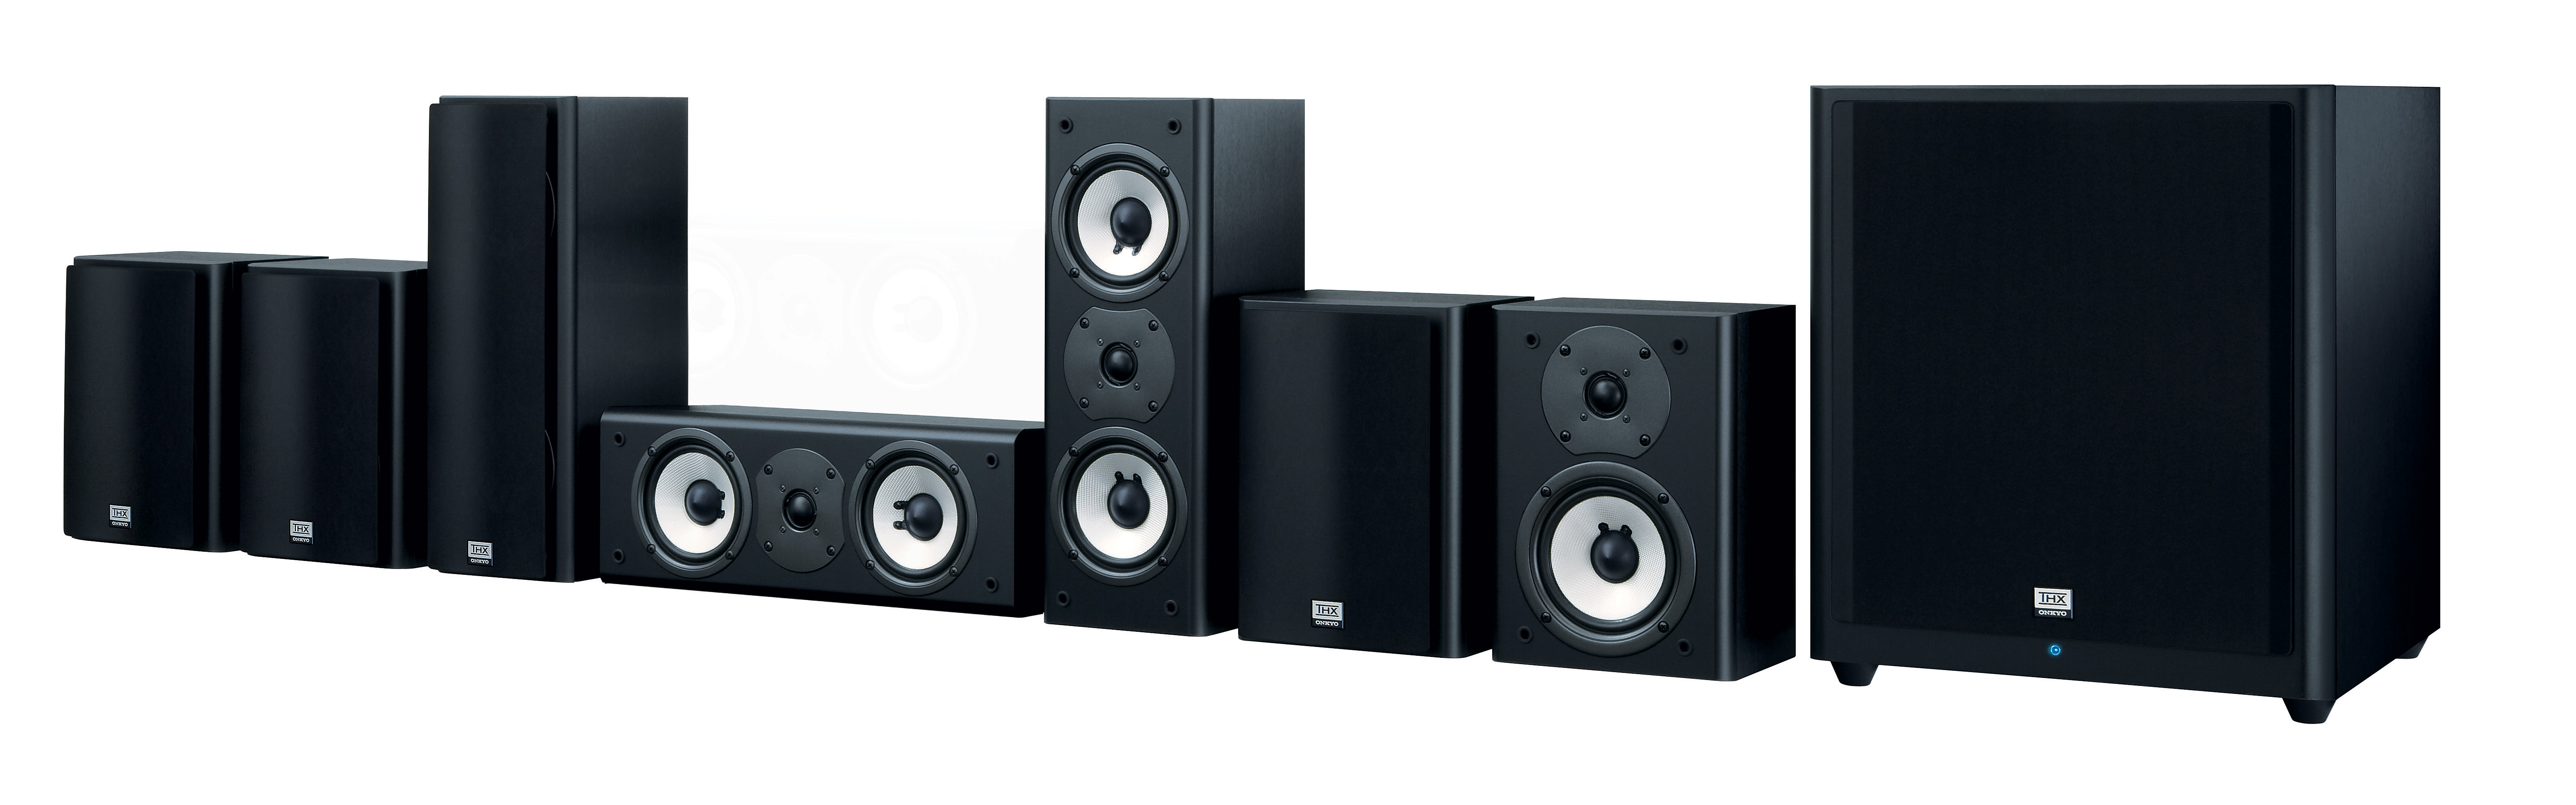 onkyo unveils thx certified 7 1 channel theater reference surround speaker package. Black Bedroom Furniture Sets. Home Design Ideas